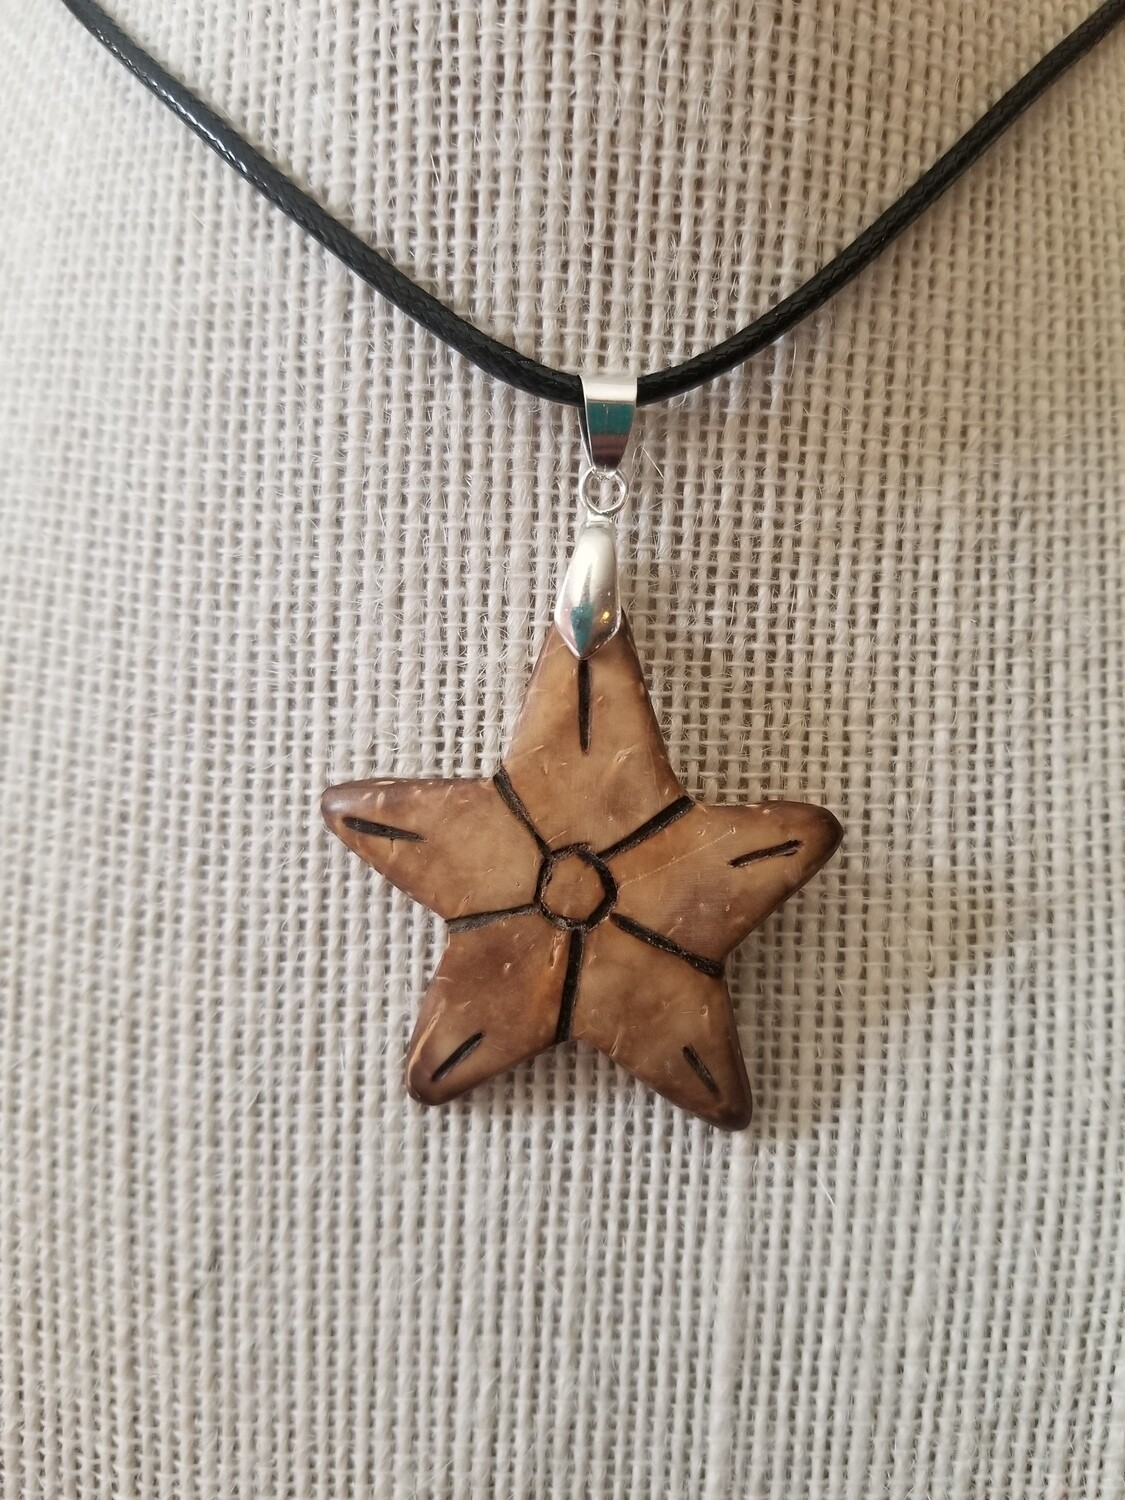 Coconut Star Necklace #2